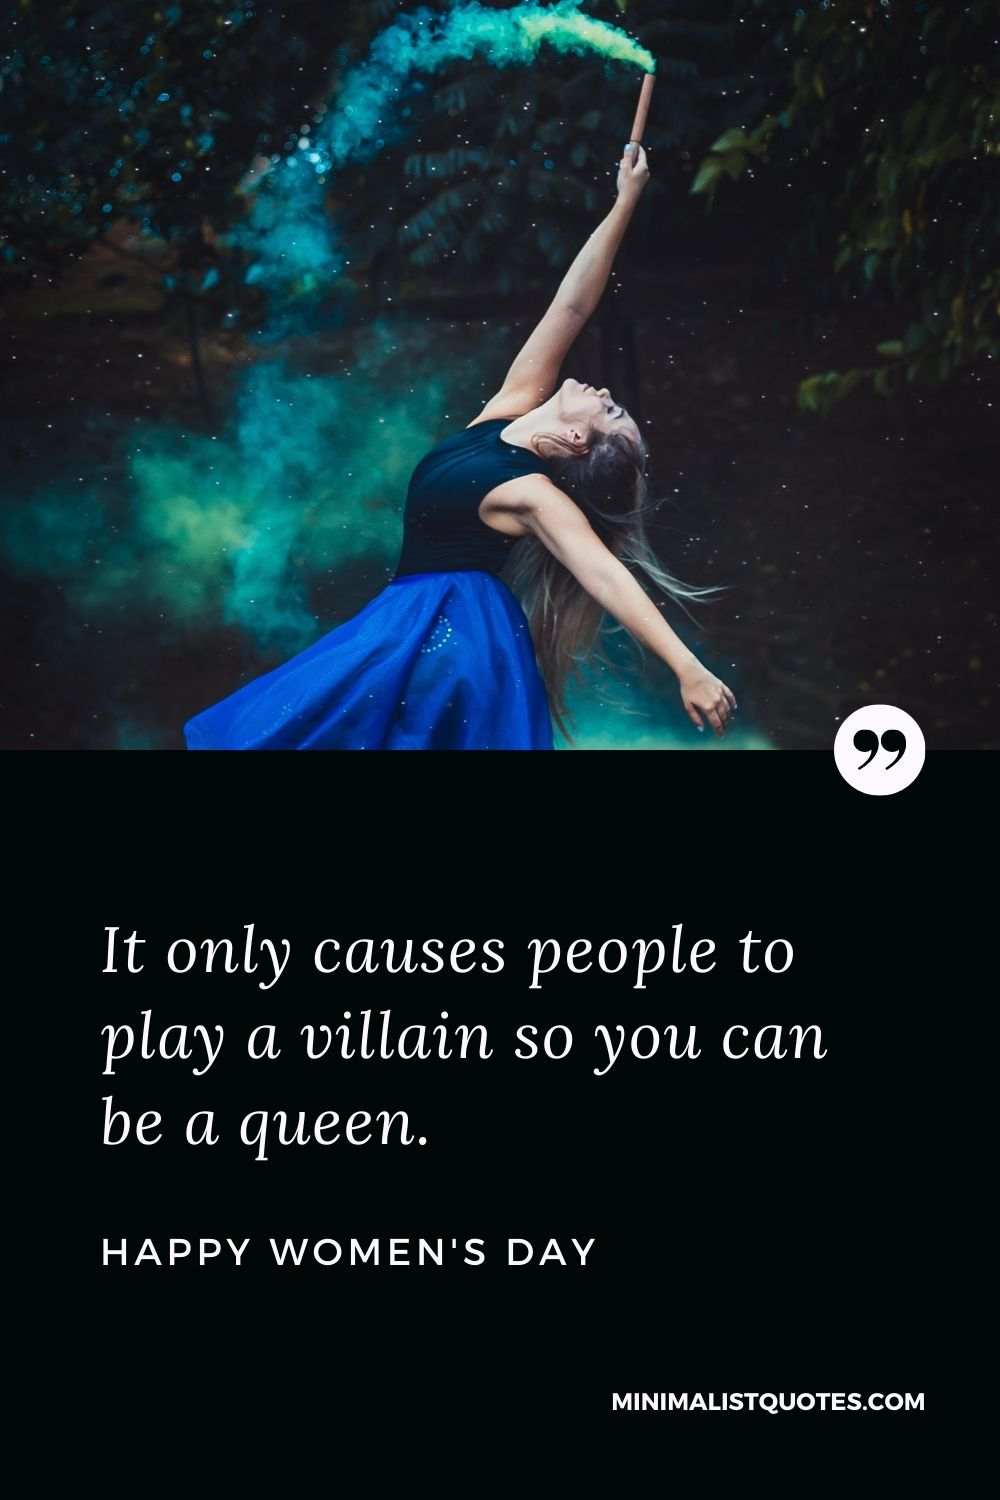 Women's Day Wish & Message With HD Image: It only causes people to play a villain so you can be a queen. Happy Women's Day!